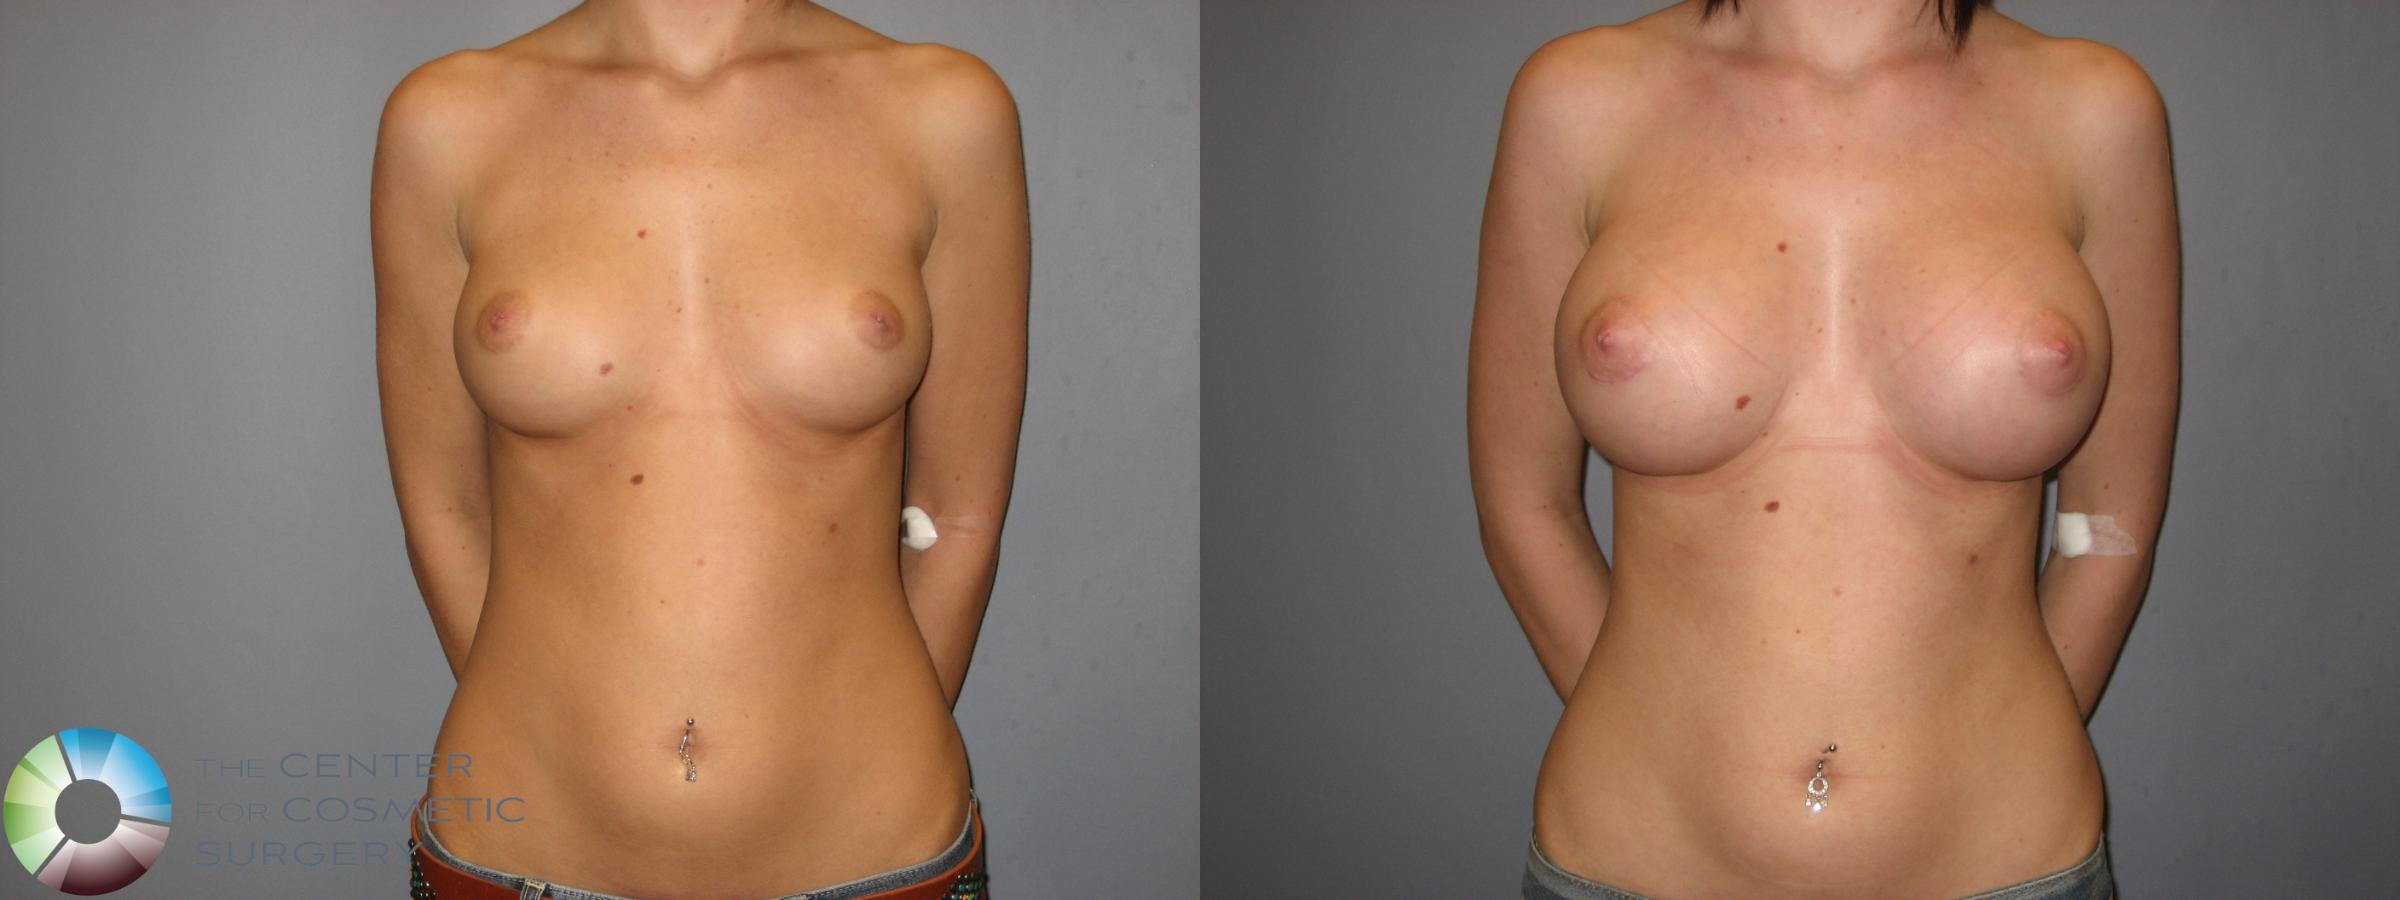 Breast Augmentation Case 177 Before & After View #1 | Golden, CO | The Center for Cosmetic Surgery